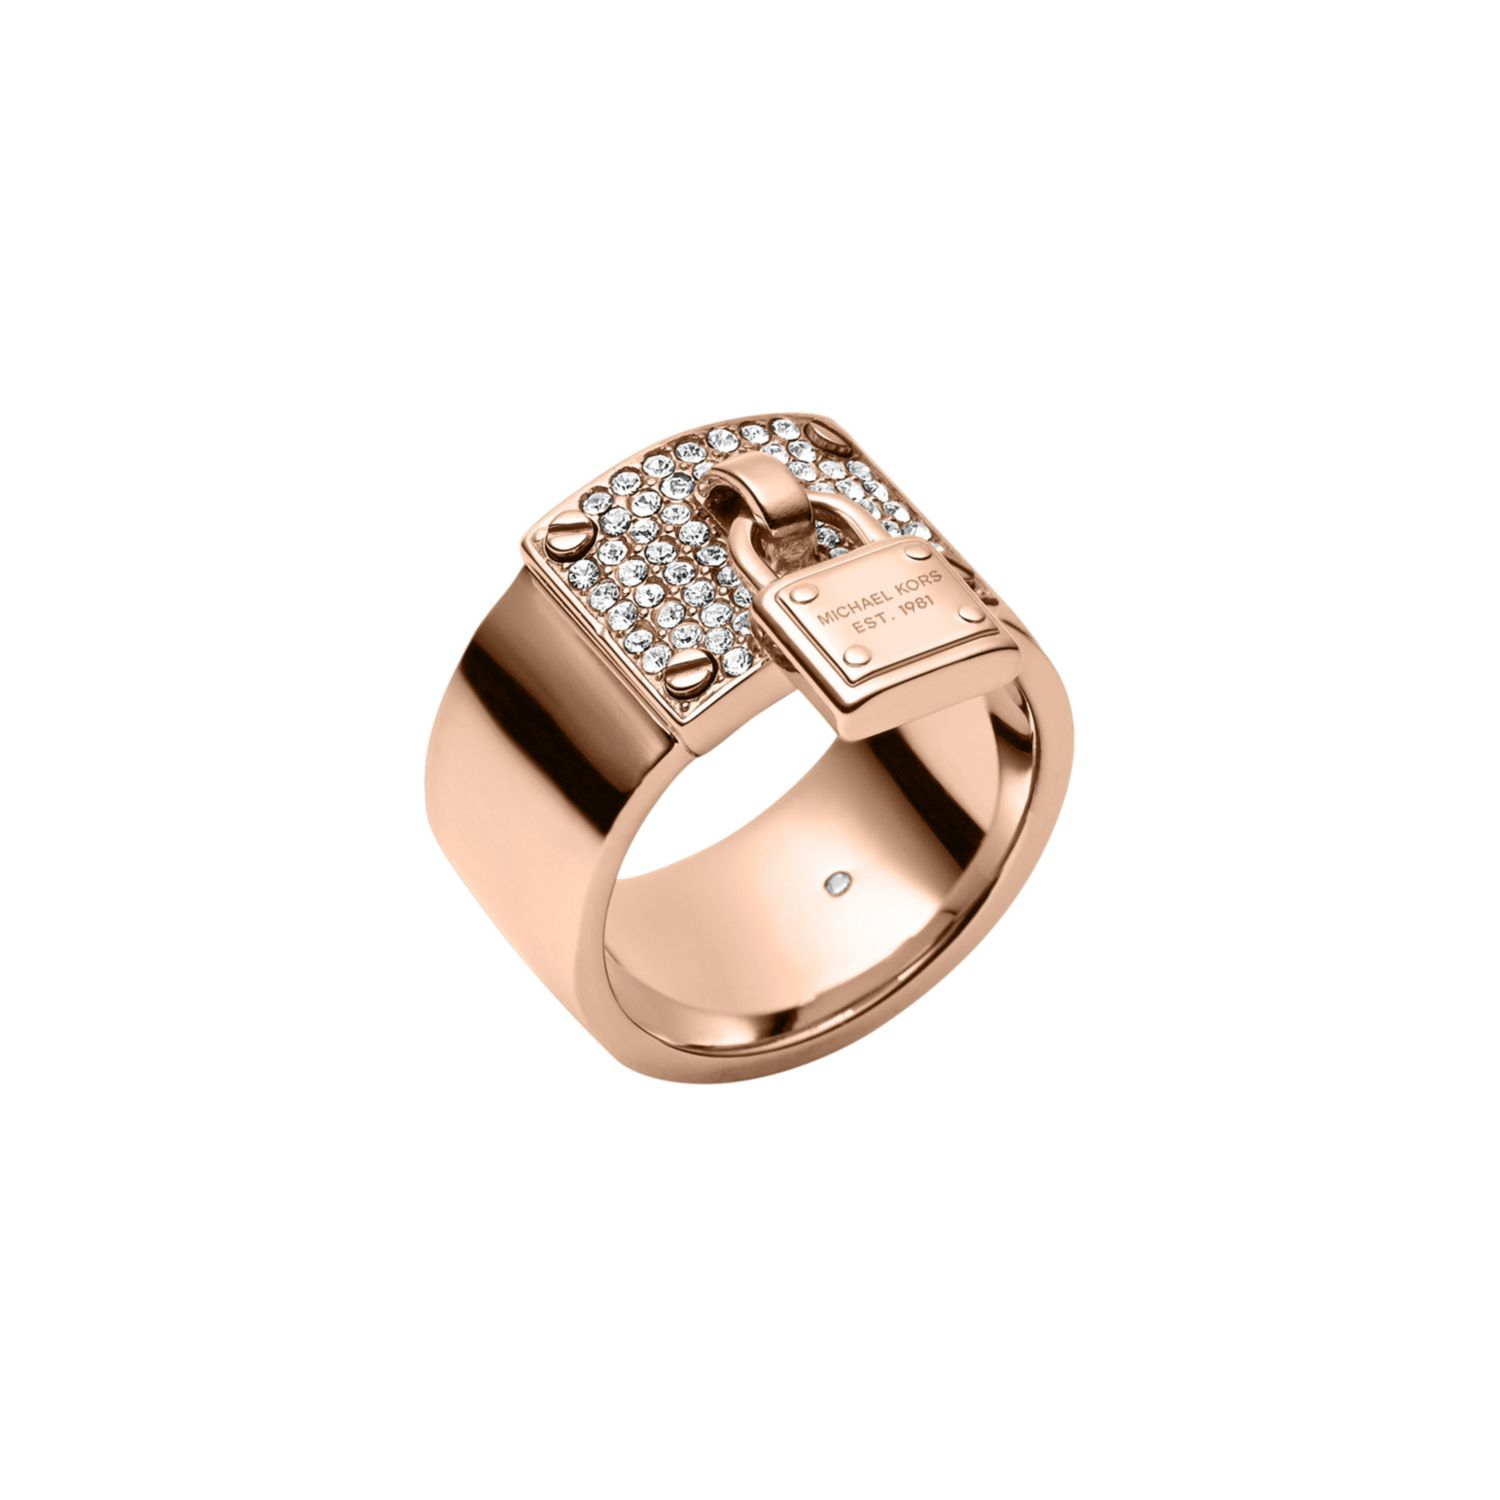 michael kors rose gold tone padlock charm ring in pink lyst. Black Bedroom Furniture Sets. Home Design Ideas